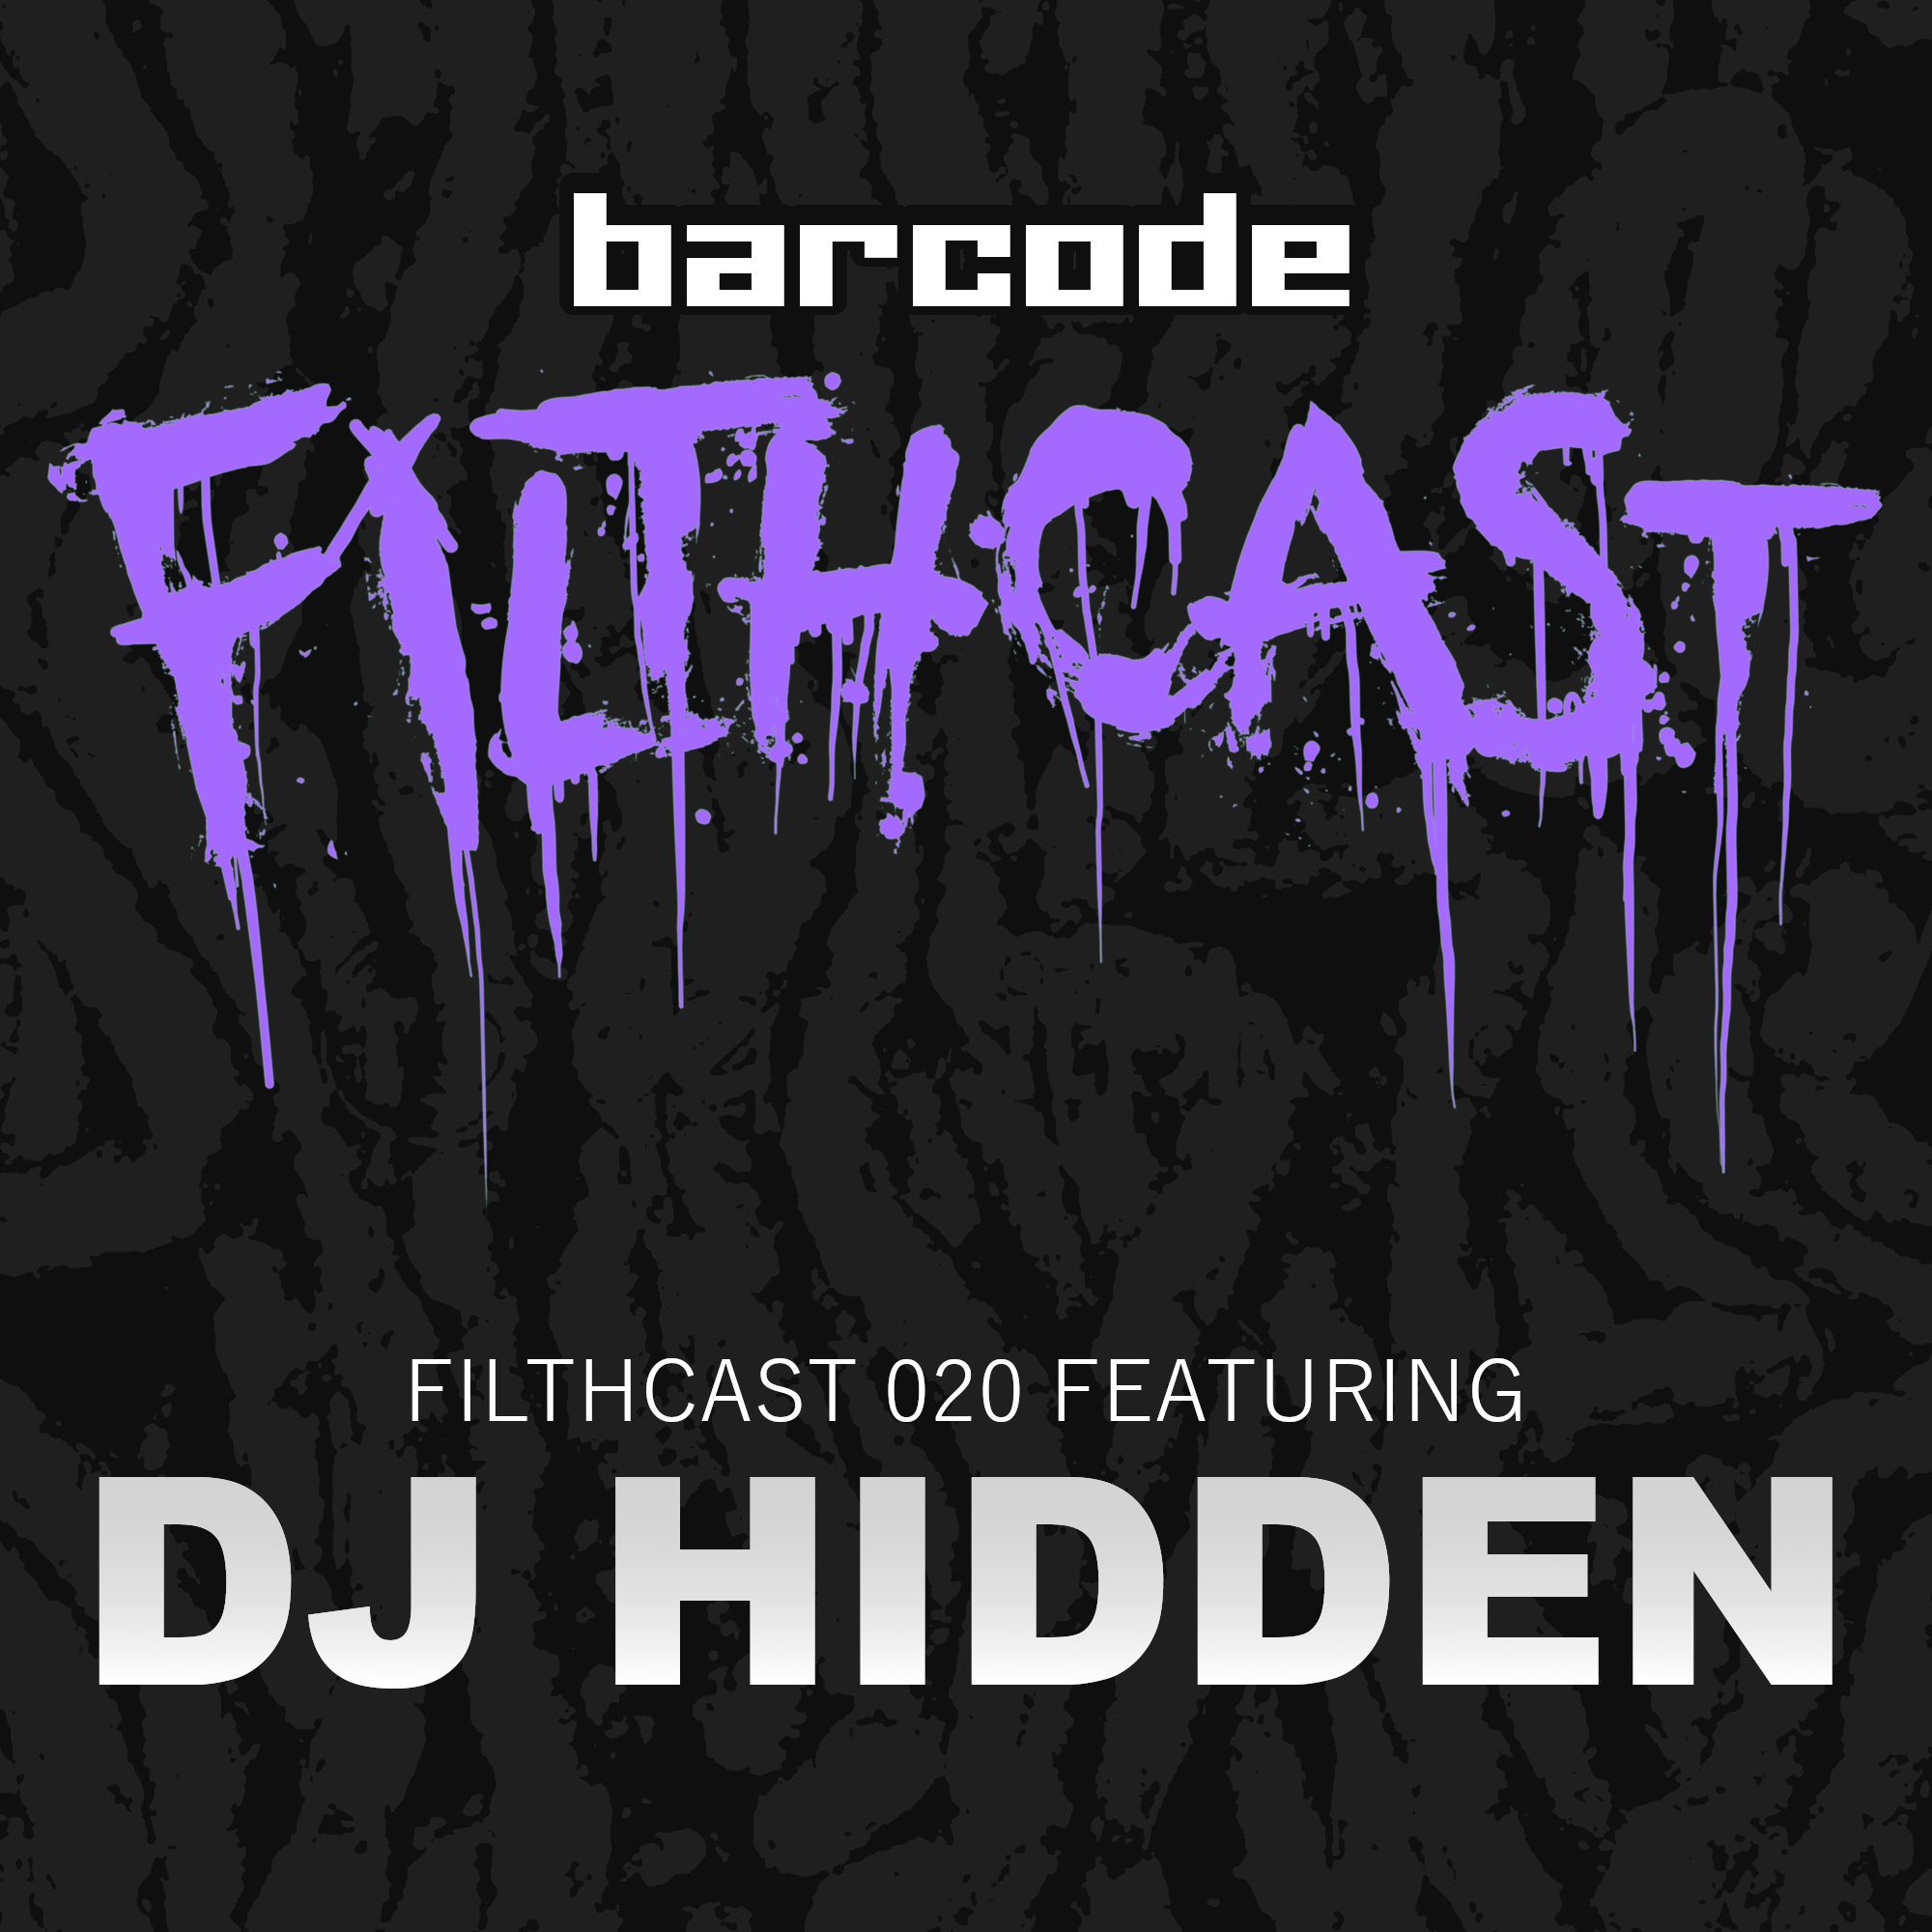 Dutch producer DJ Hidden (who also forms one half of the hardcore outfit The Outside Agency with Eye-D) drops the first Filthcast of 2010.